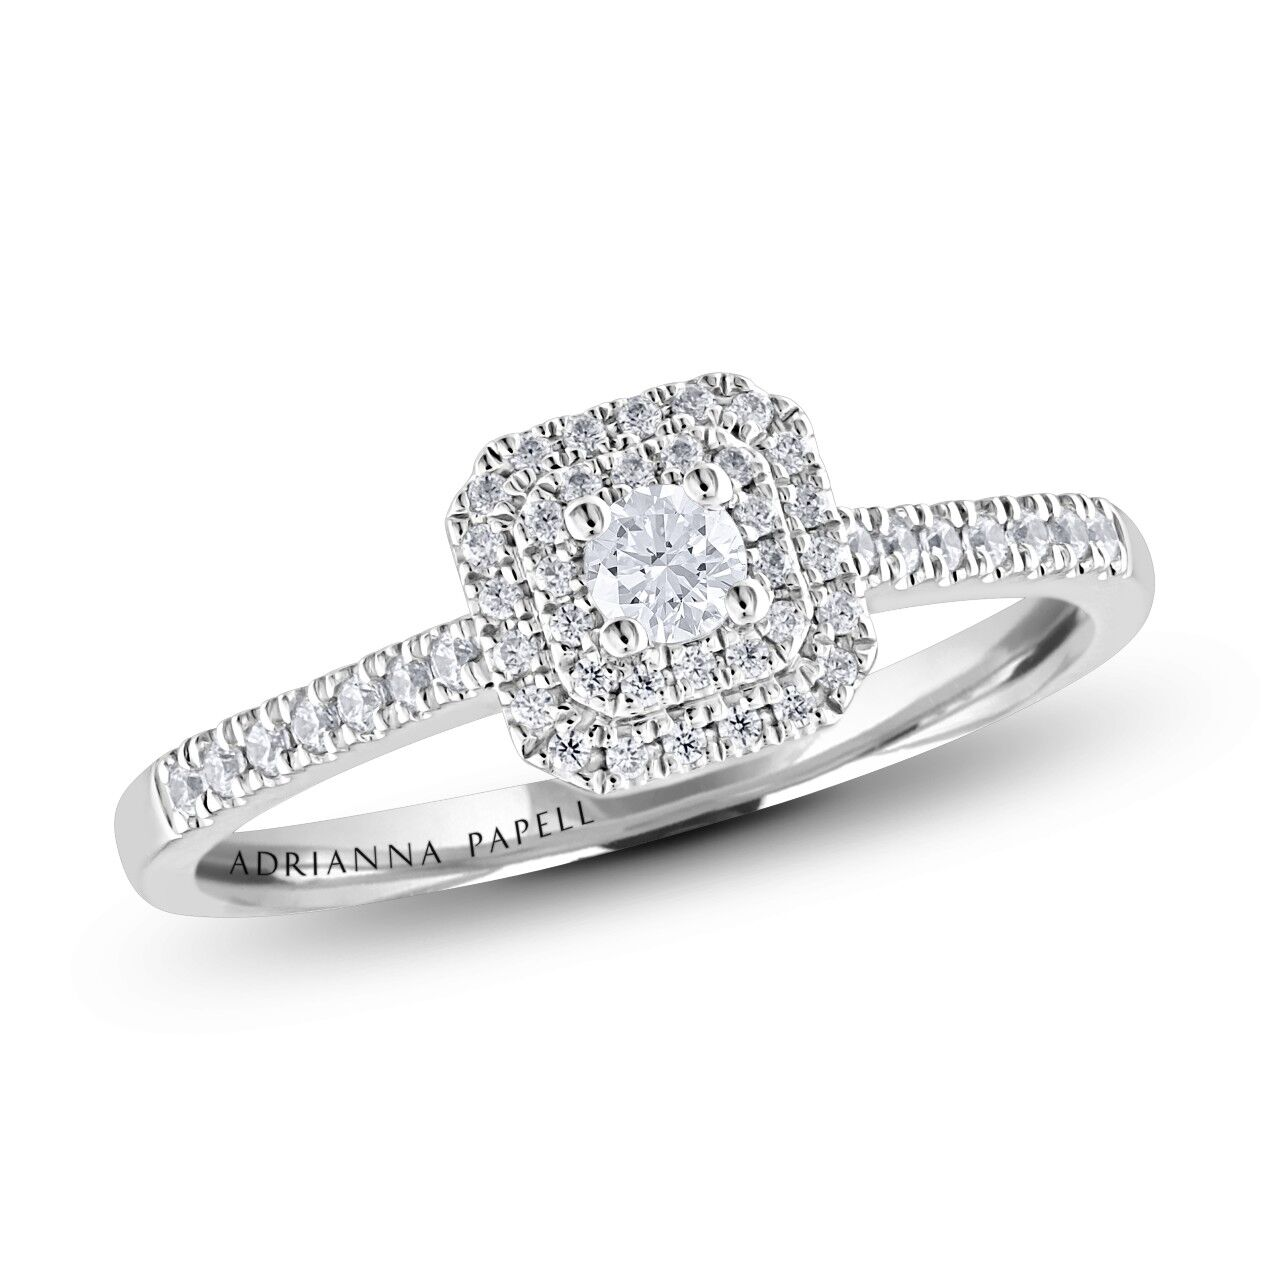 adrianna-papell-engagement-ring